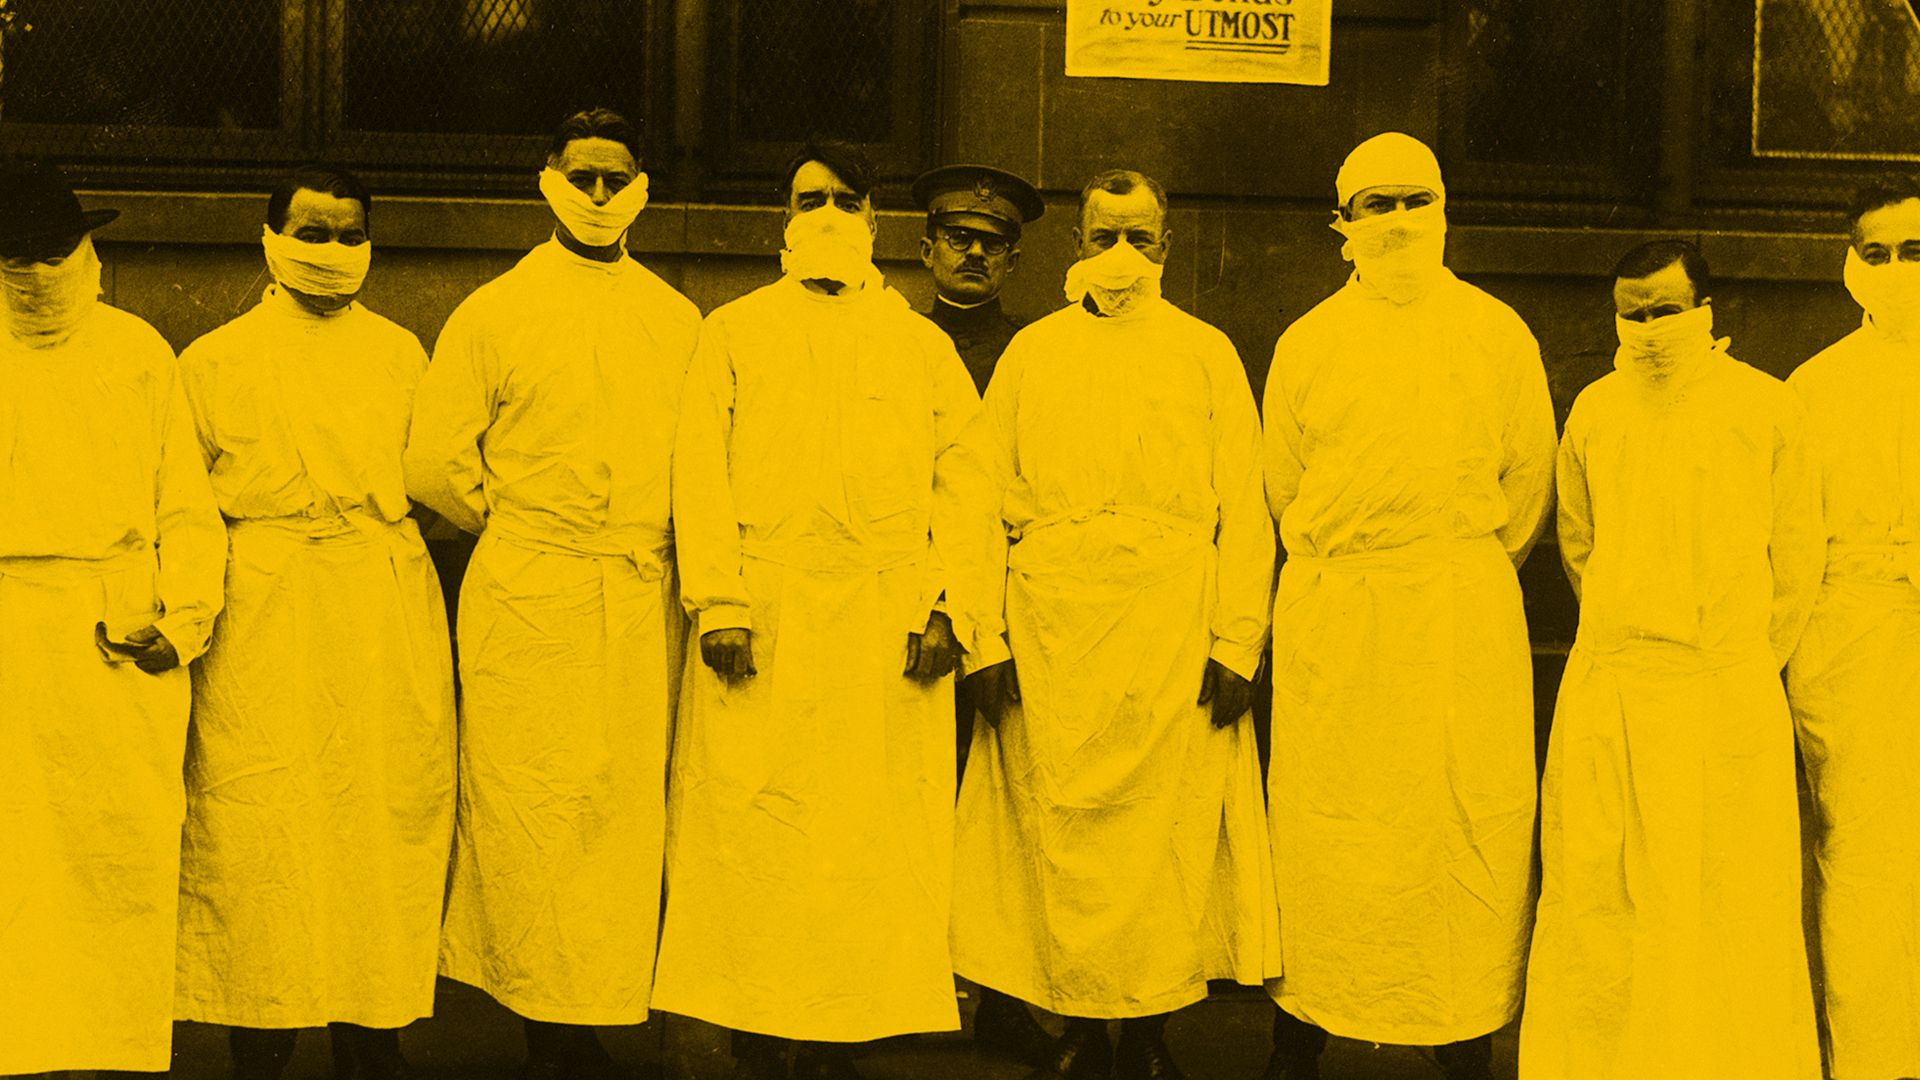 Doctors during 1918 flu pandemic (Credit: Getty Images)